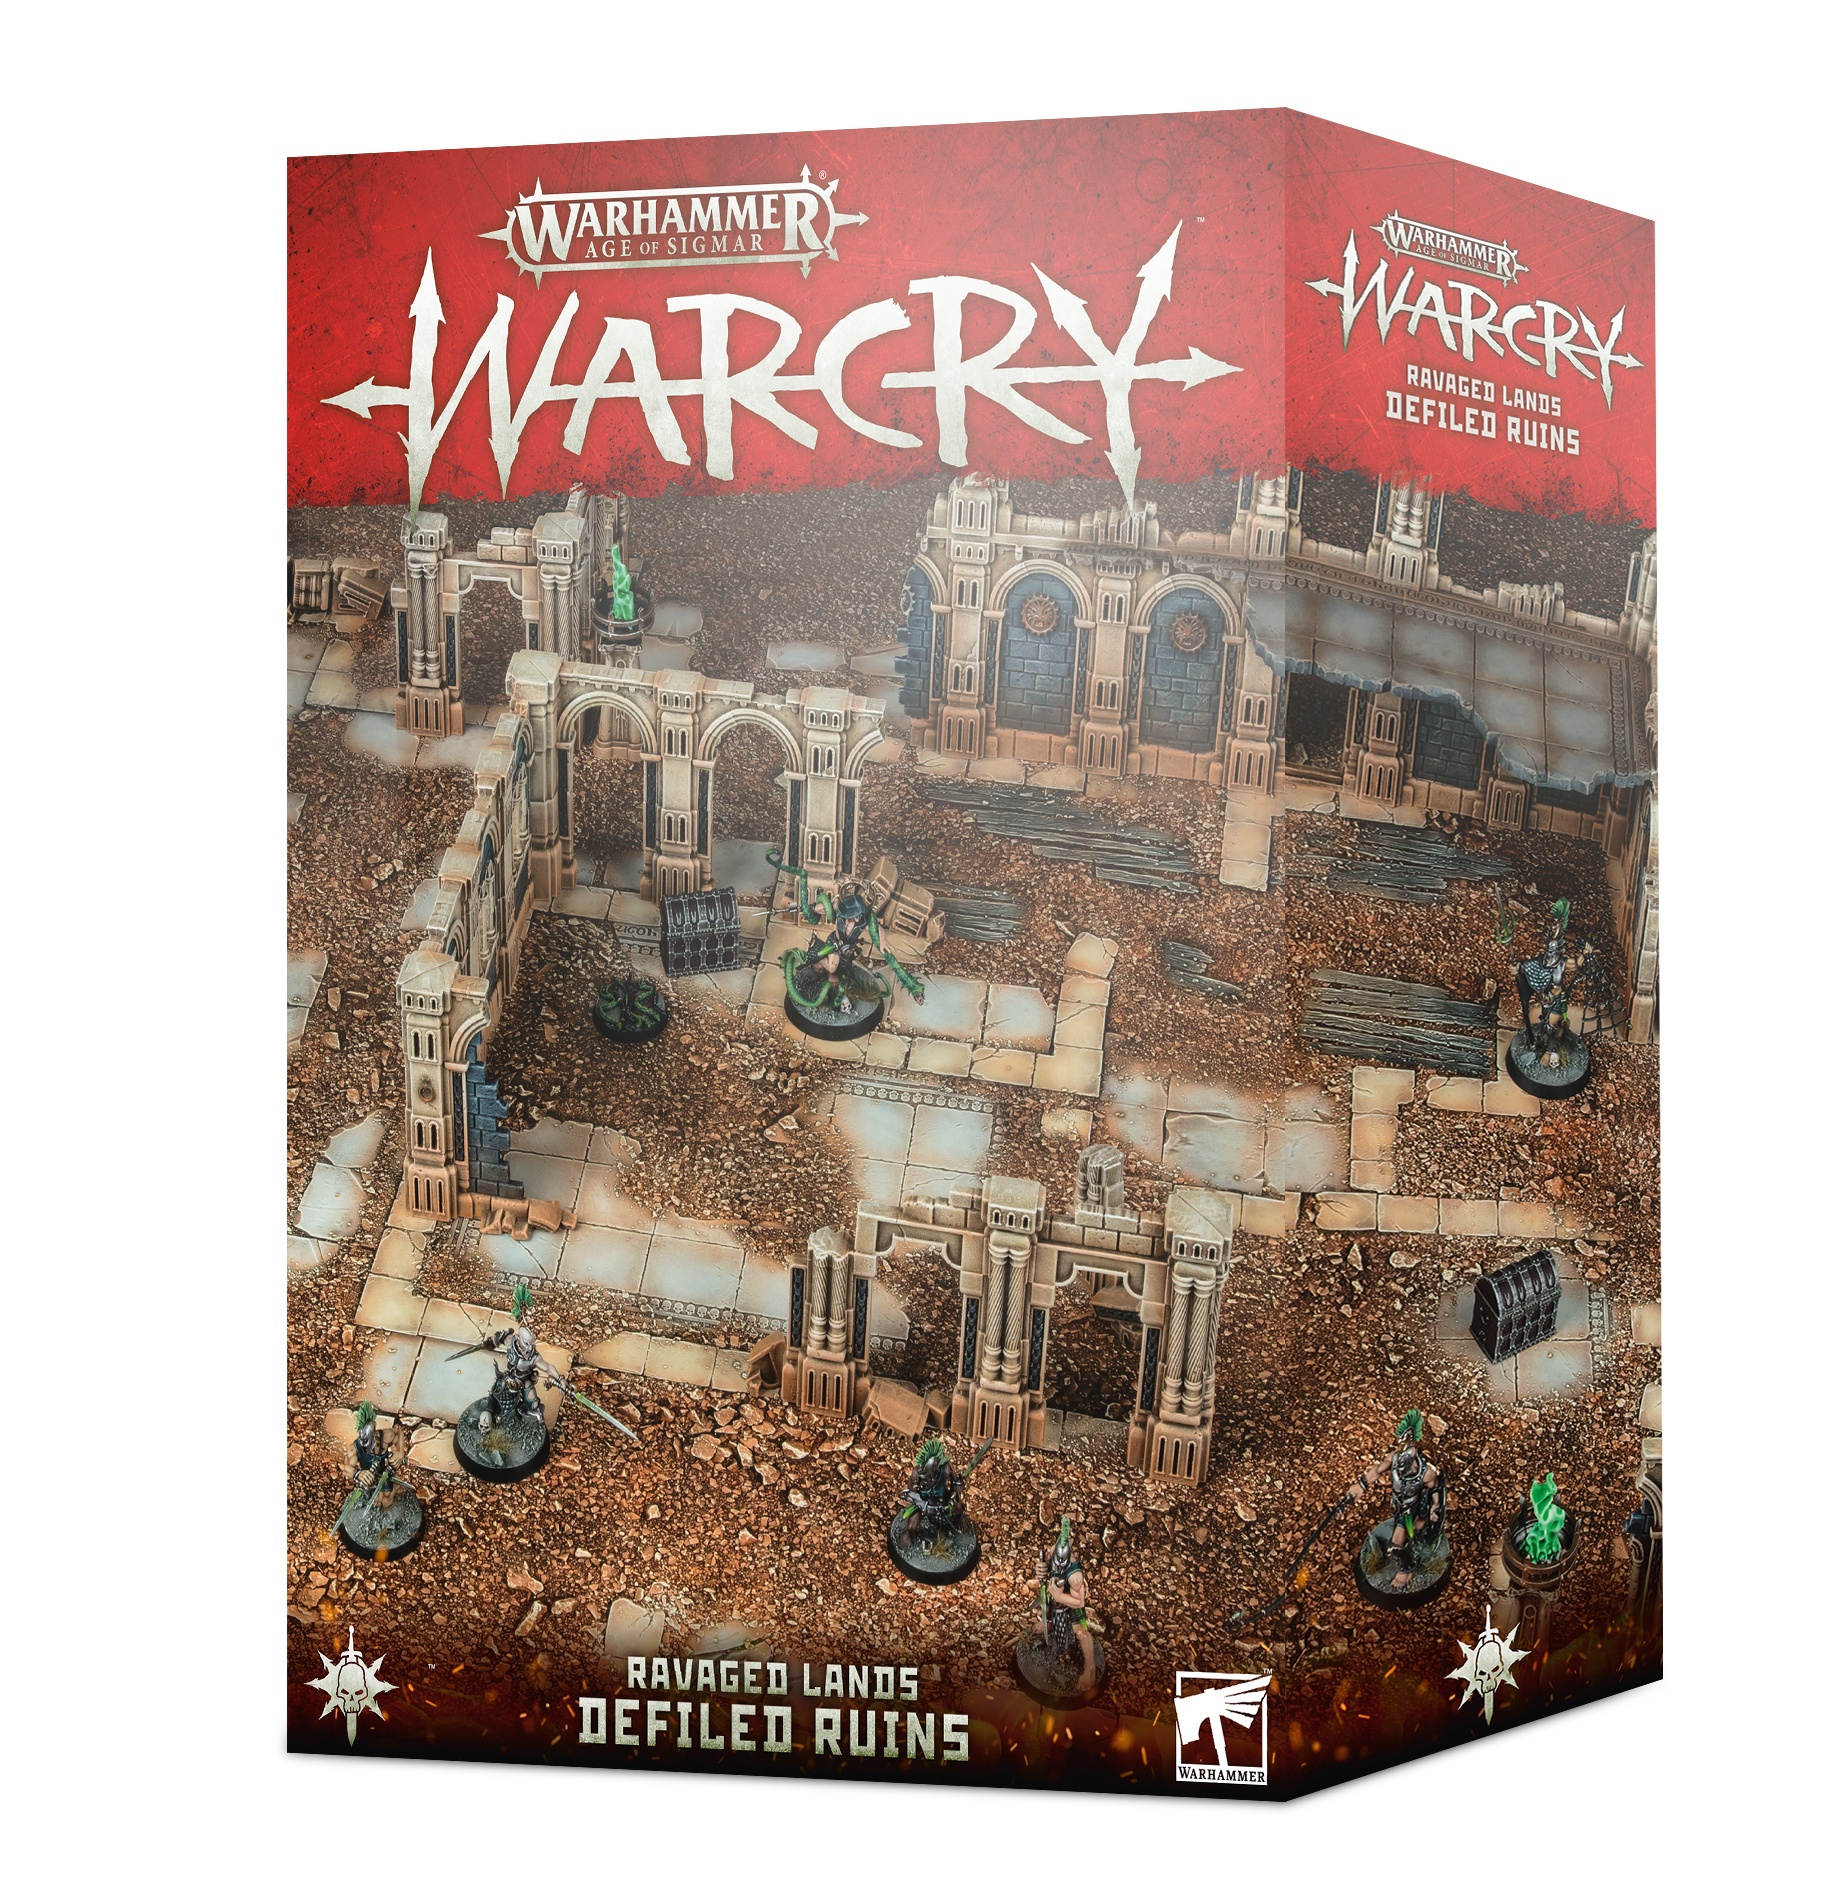 Defiled Ruins, Warcry